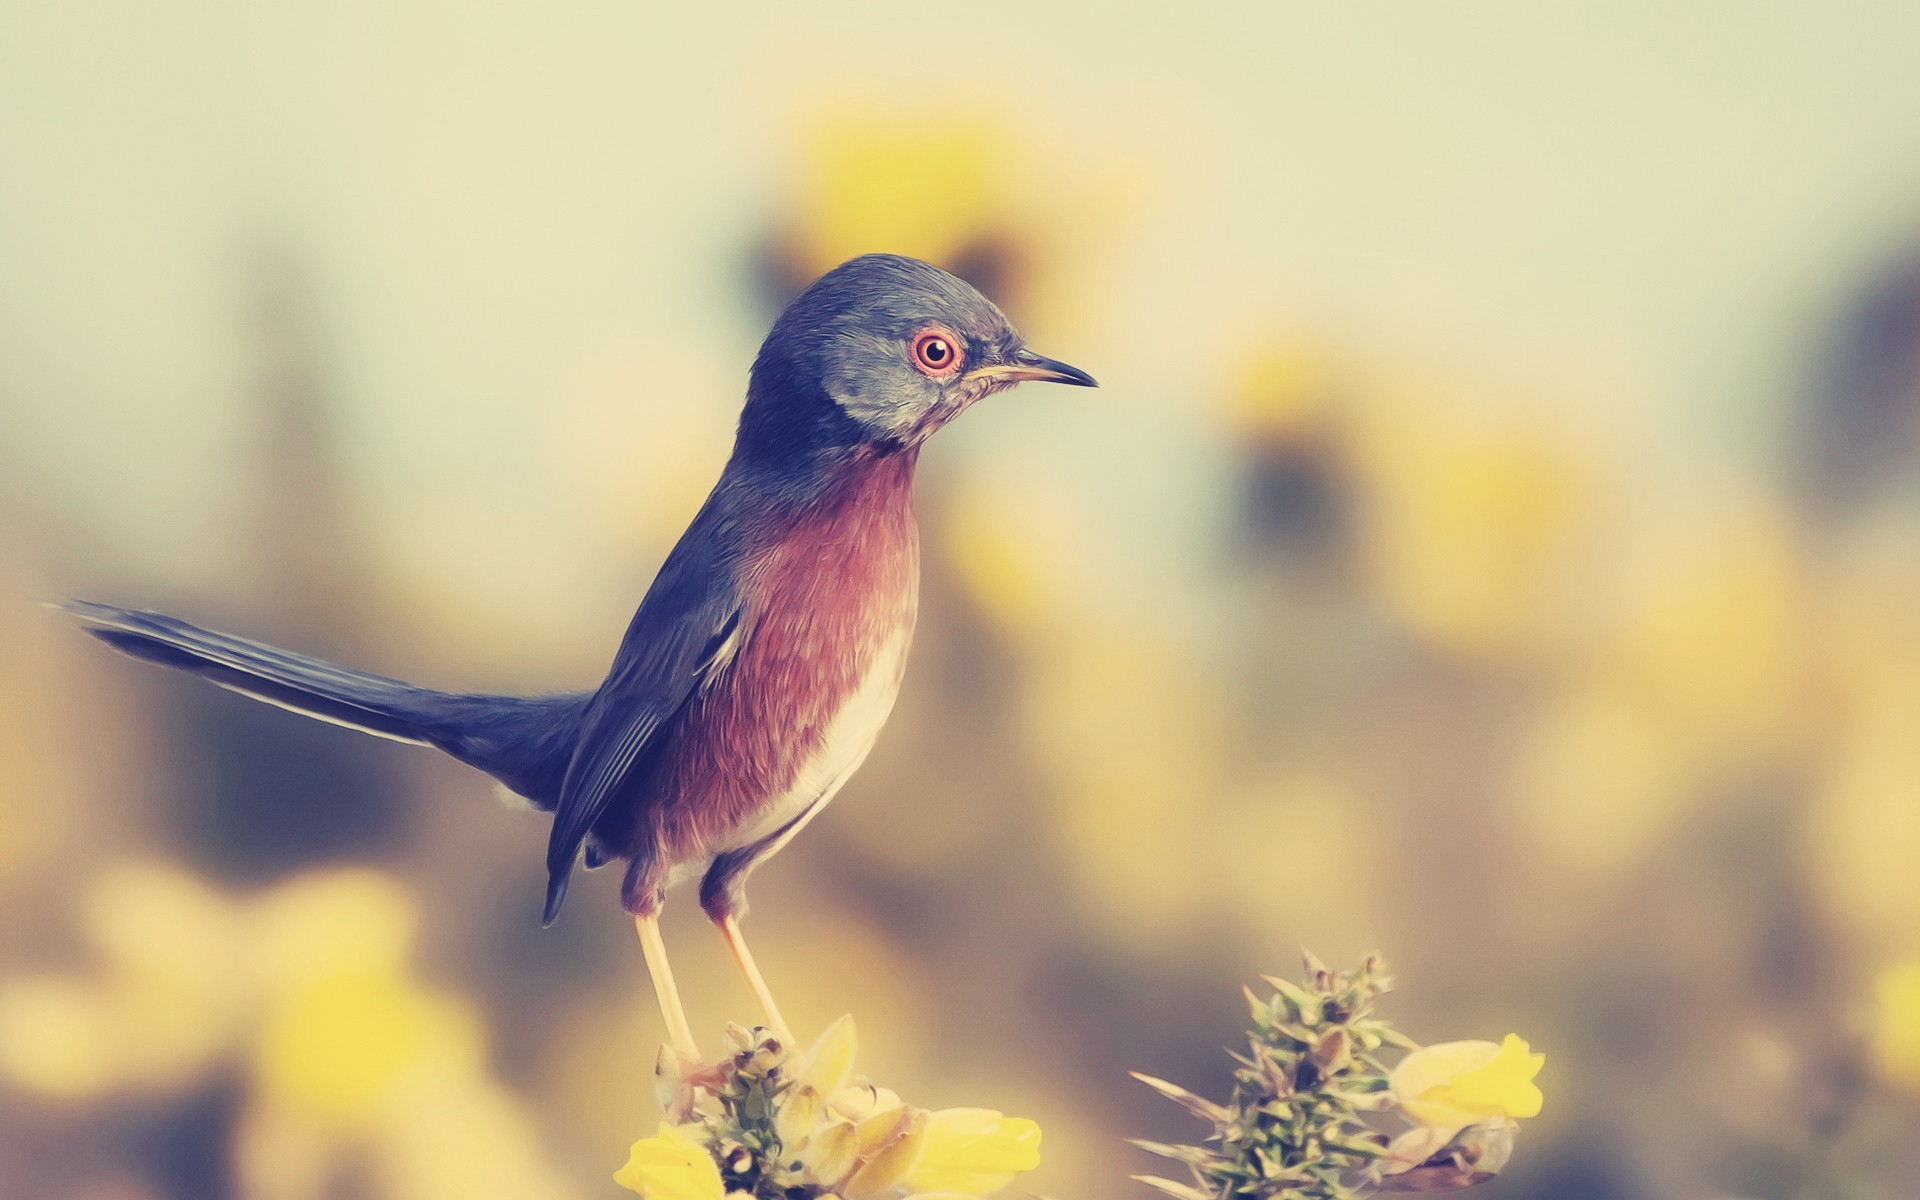 Beautiful Small Bird Looking Seriously HD Wallpapers 1920x1200